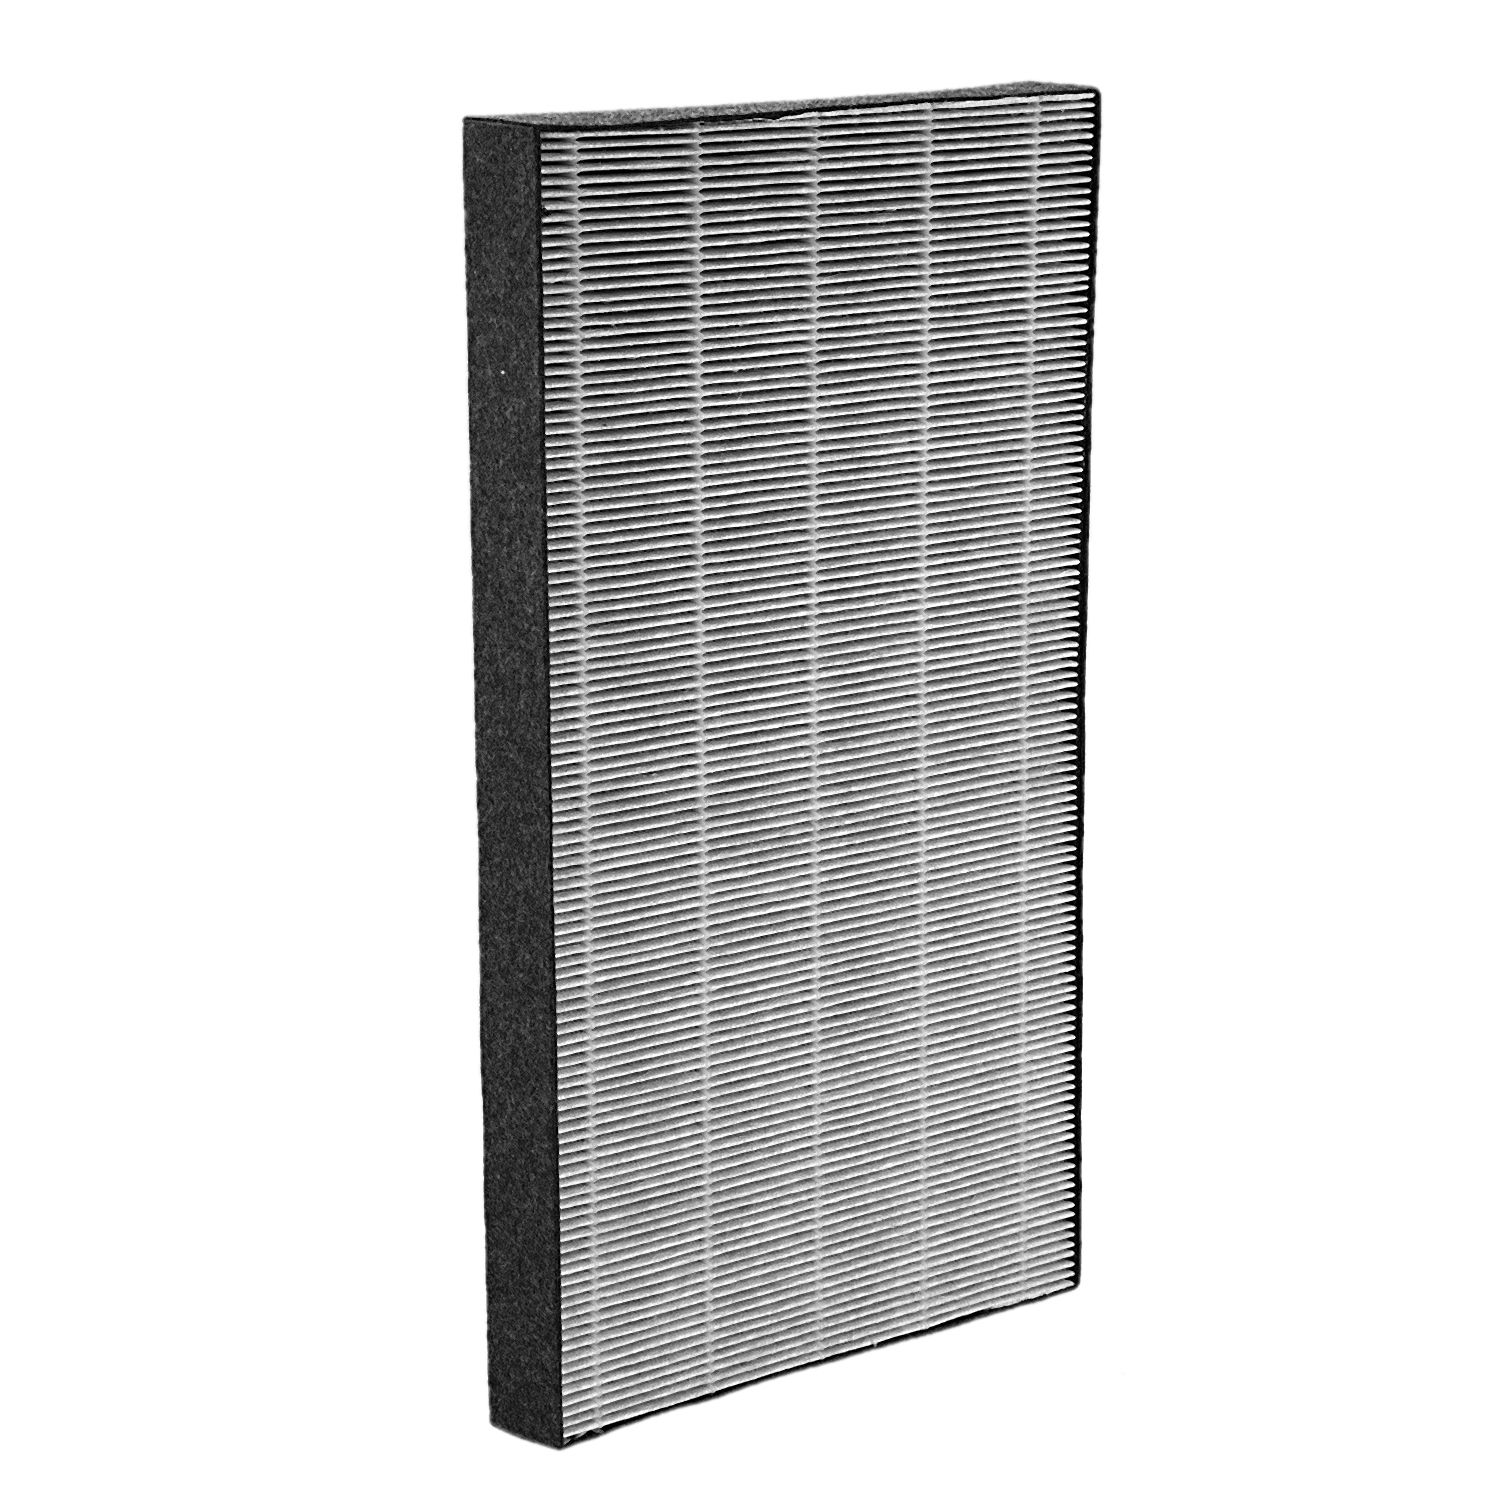 Air purifier hepa air filter FZ - 380 HFS is suitable for sharp KC - W380SW/W KC - Z380SW KC - C150SW KI KI - DX85 BB60 - WAir purifier hepa air filter FZ - 380 HFS is suitable for sharp KC - W380SW/W KC - Z380SW KC - C150SW KI KI - DX85 BB60 - W